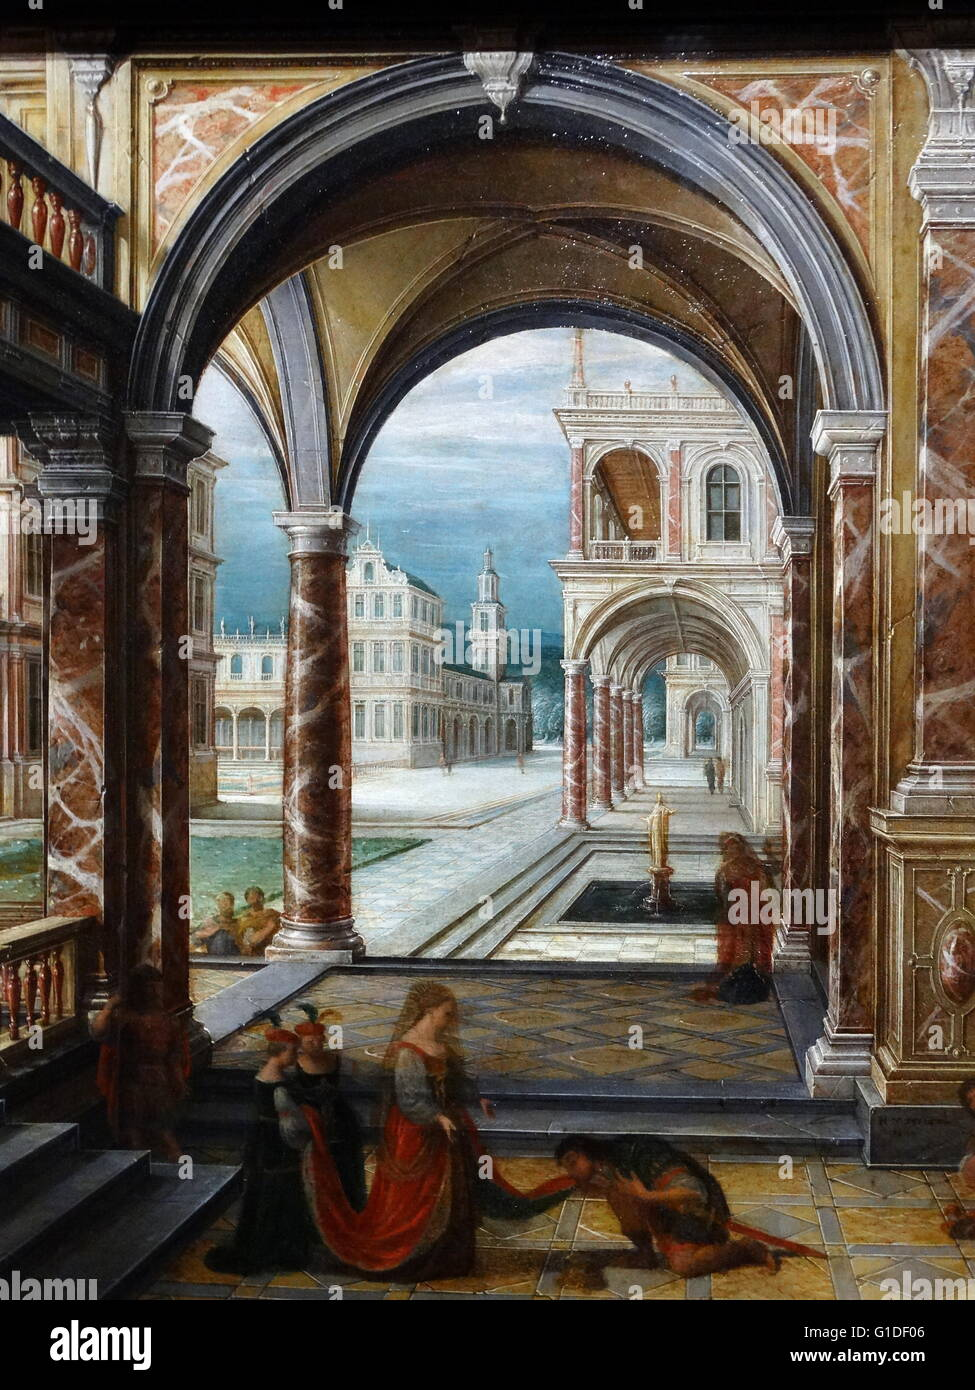 Detail from the painting titled 'The Courtyard of a Renaissance Palace' by Hendrik van Steenwijk II (1580 - Stock Image